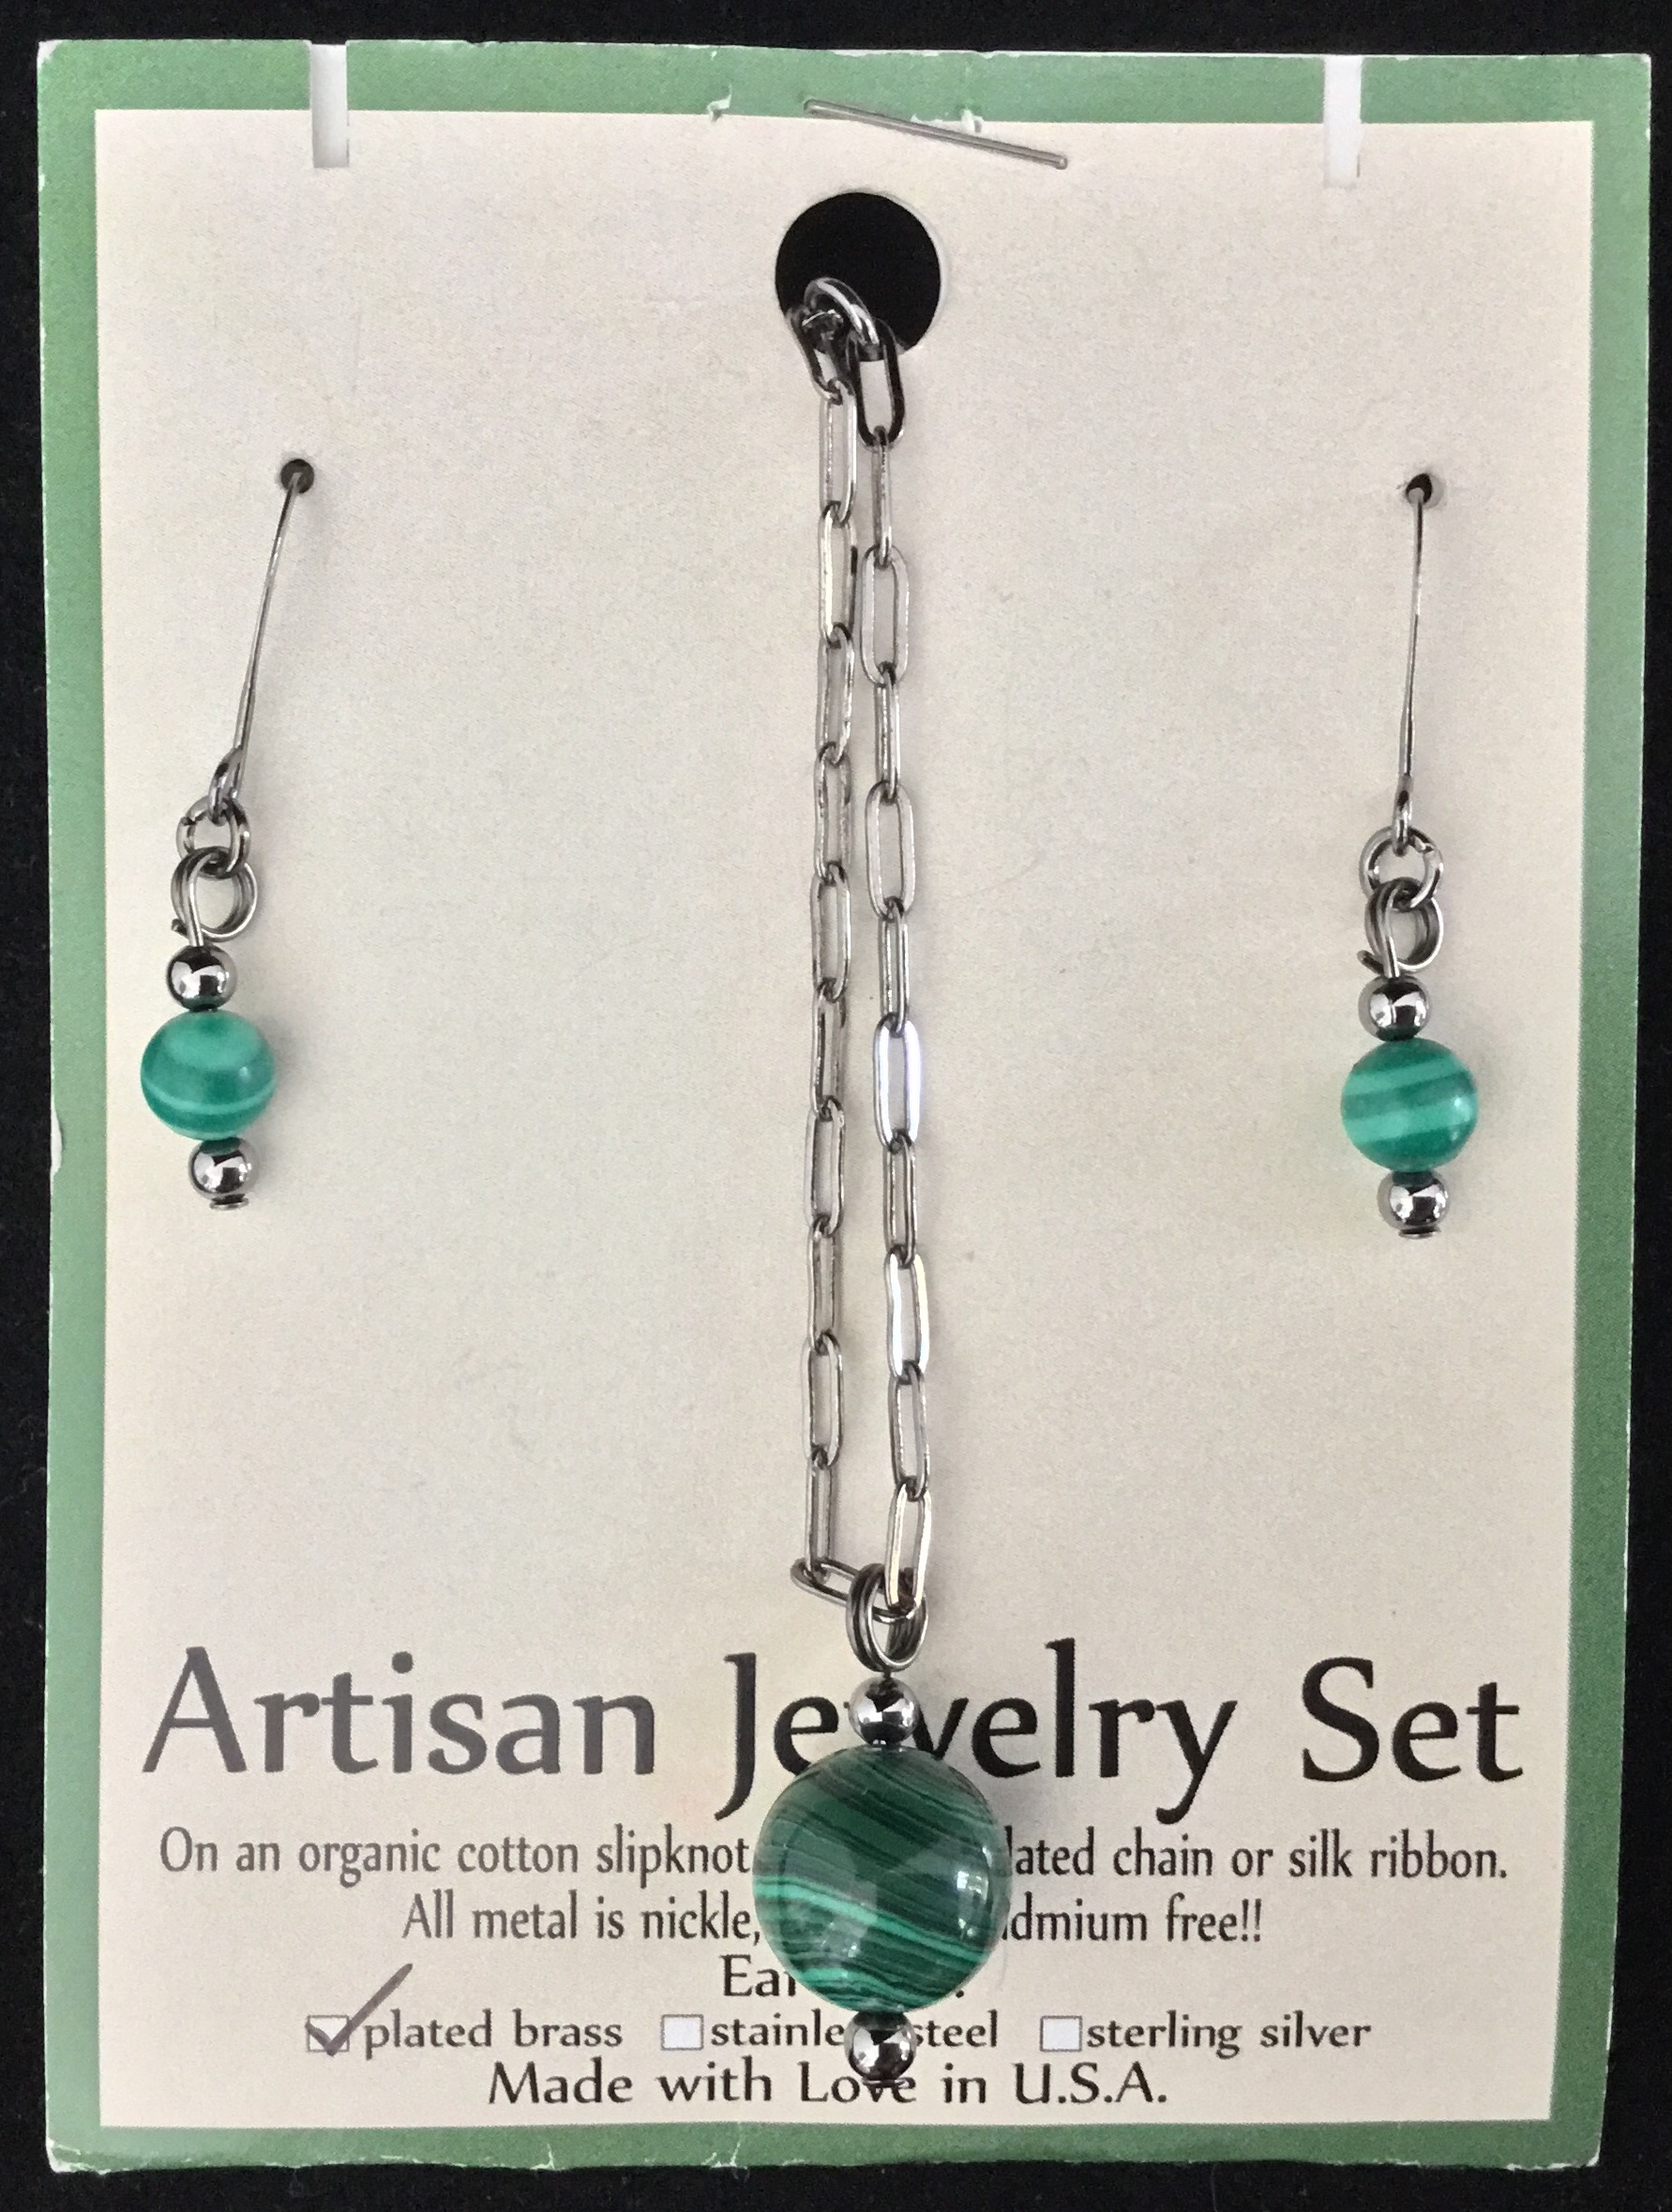 Artisan Jewelry Set, Malachite Necklace and Earrings